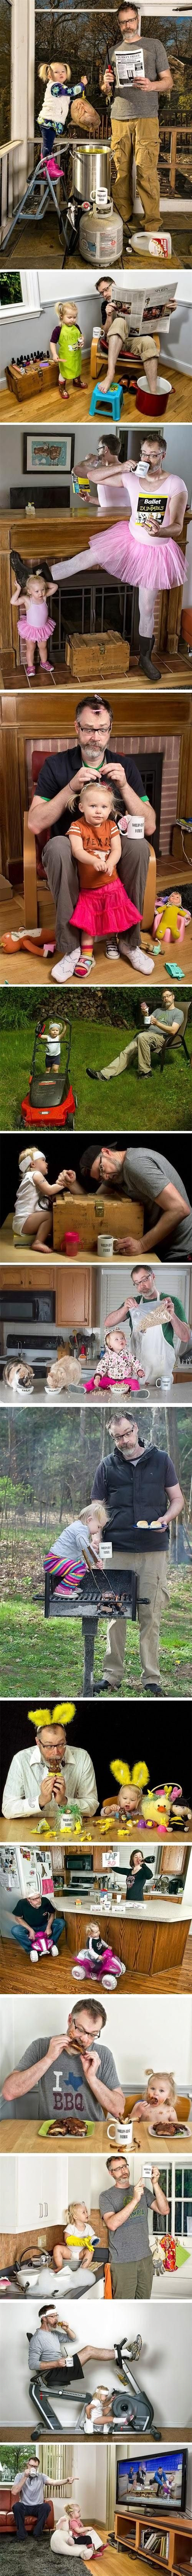 Coolest dad ever? Funny pics!